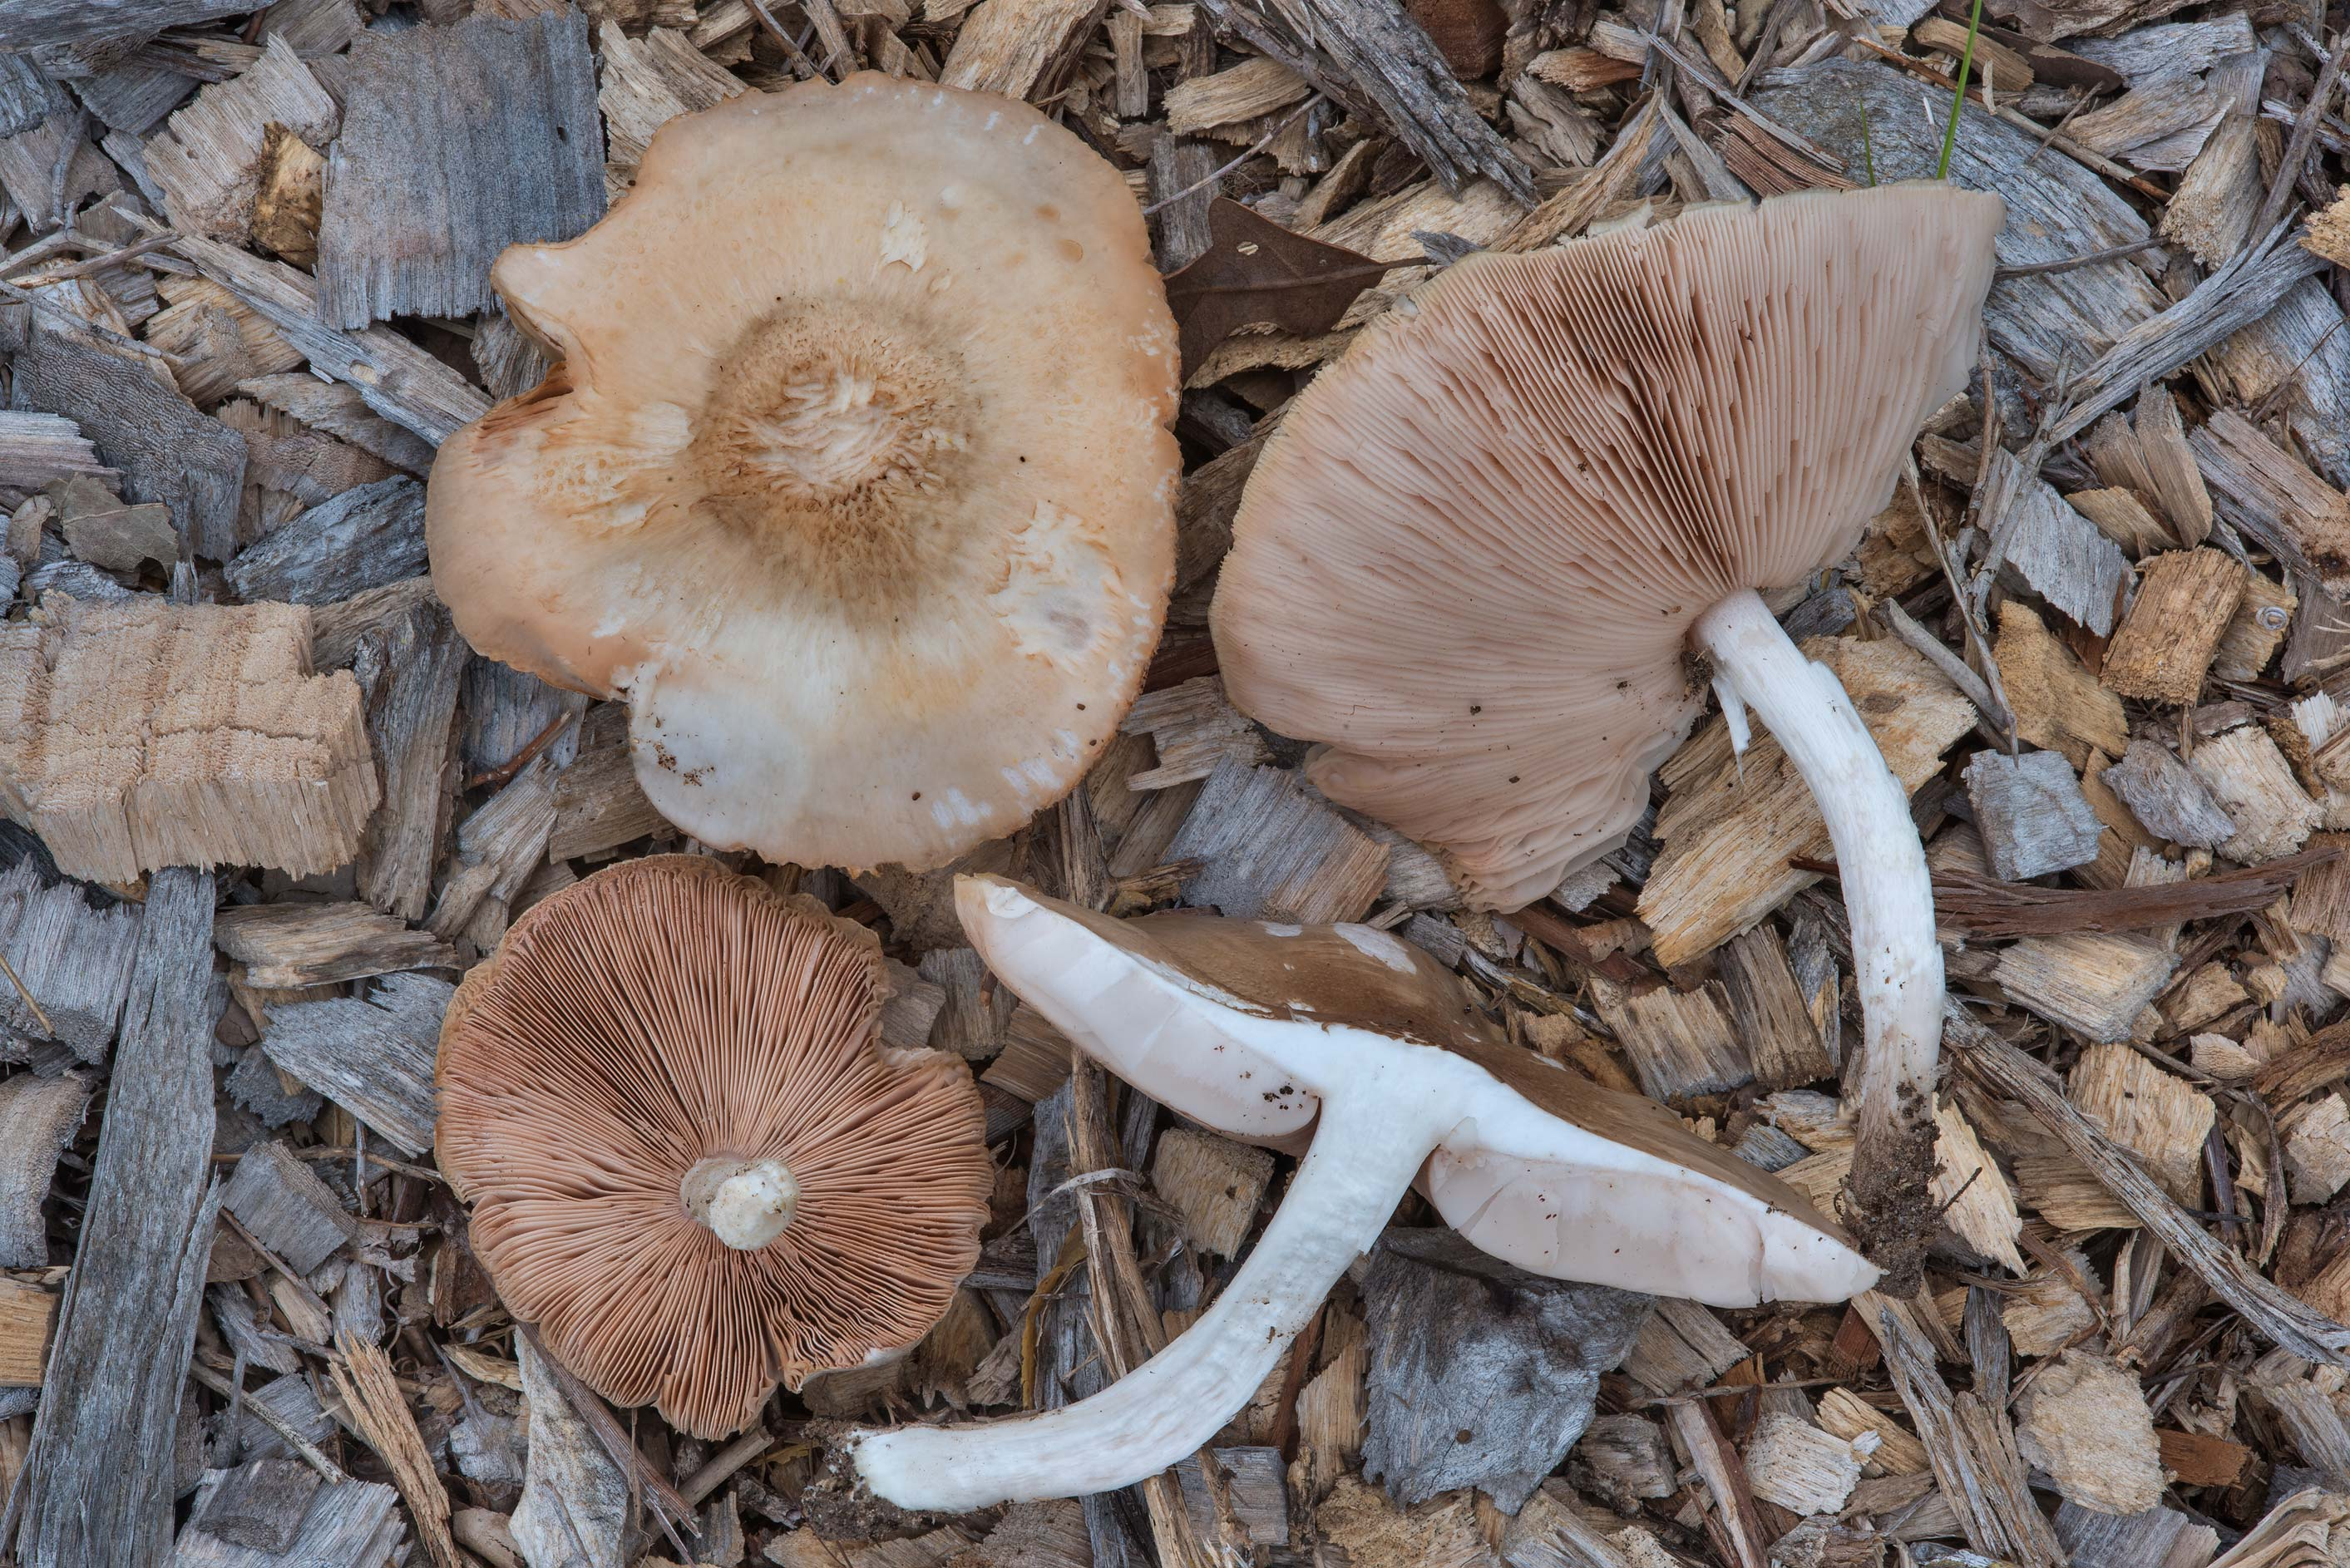 Pluteus mushrooms on wood chips near Post Oak...Creek Park. College Station, Texas